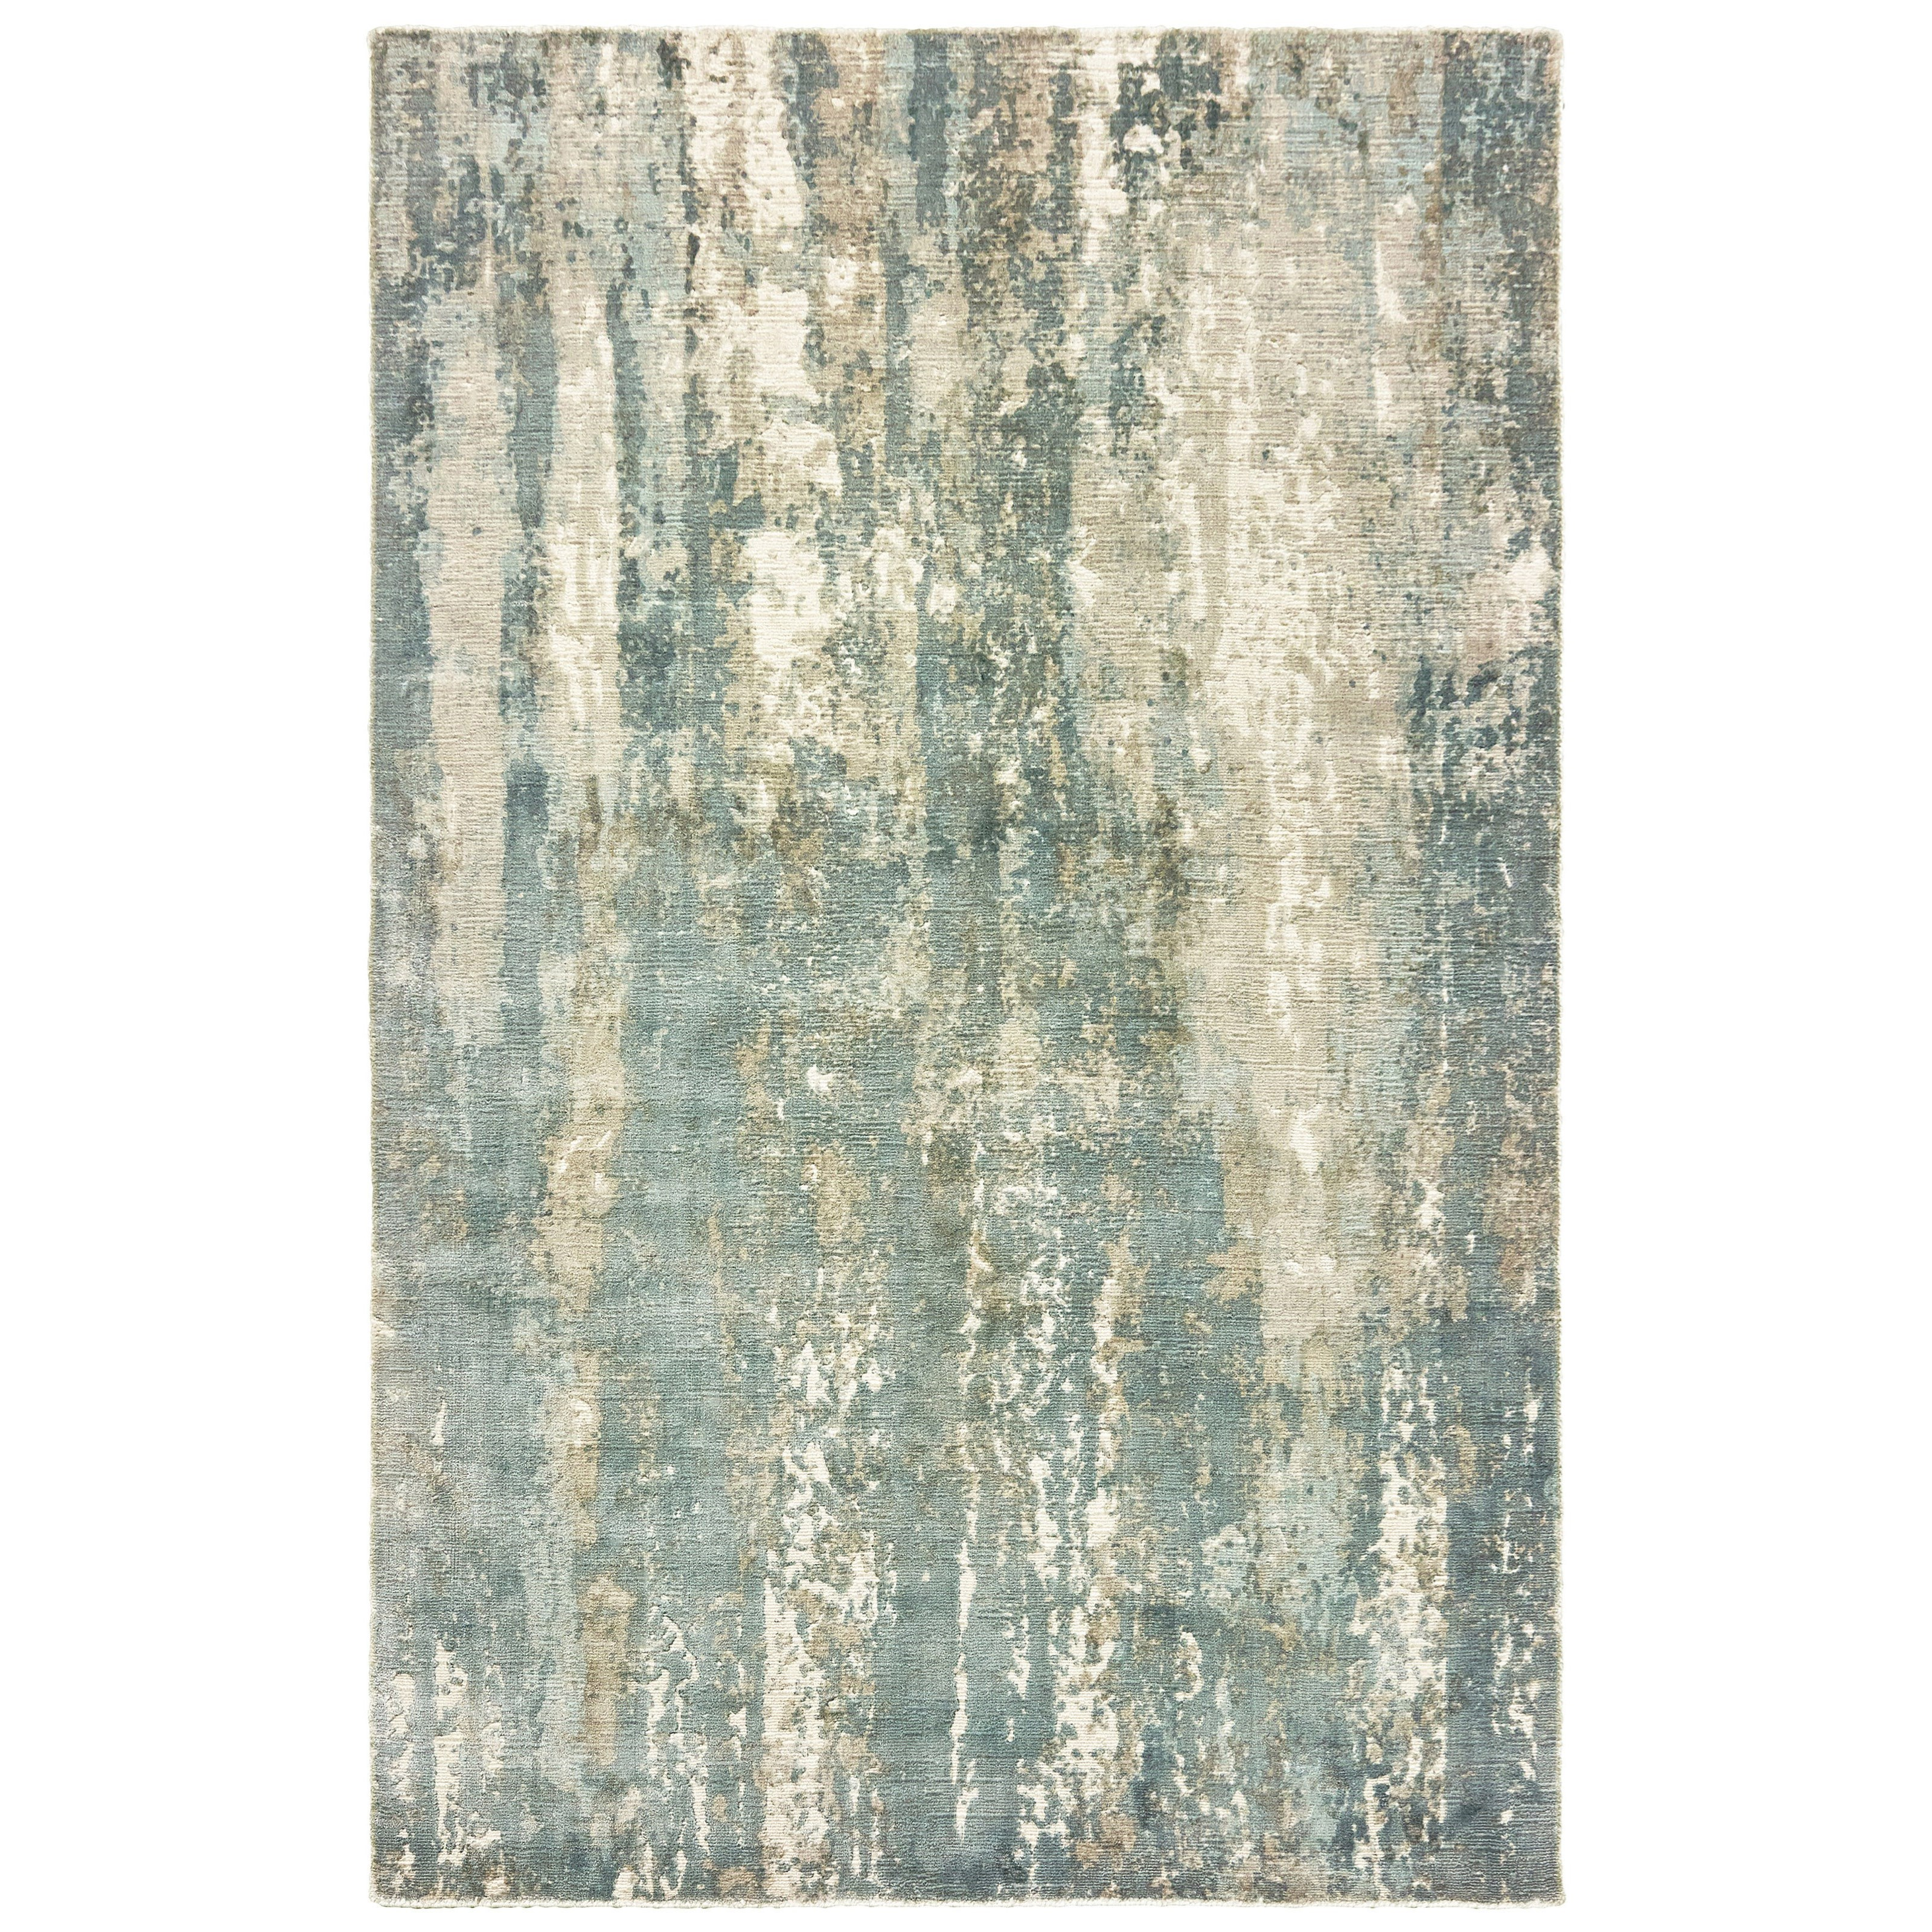 Formations 8' X 10' Rectangle Rug by Oriental Weavers at Novello Home Furnishings